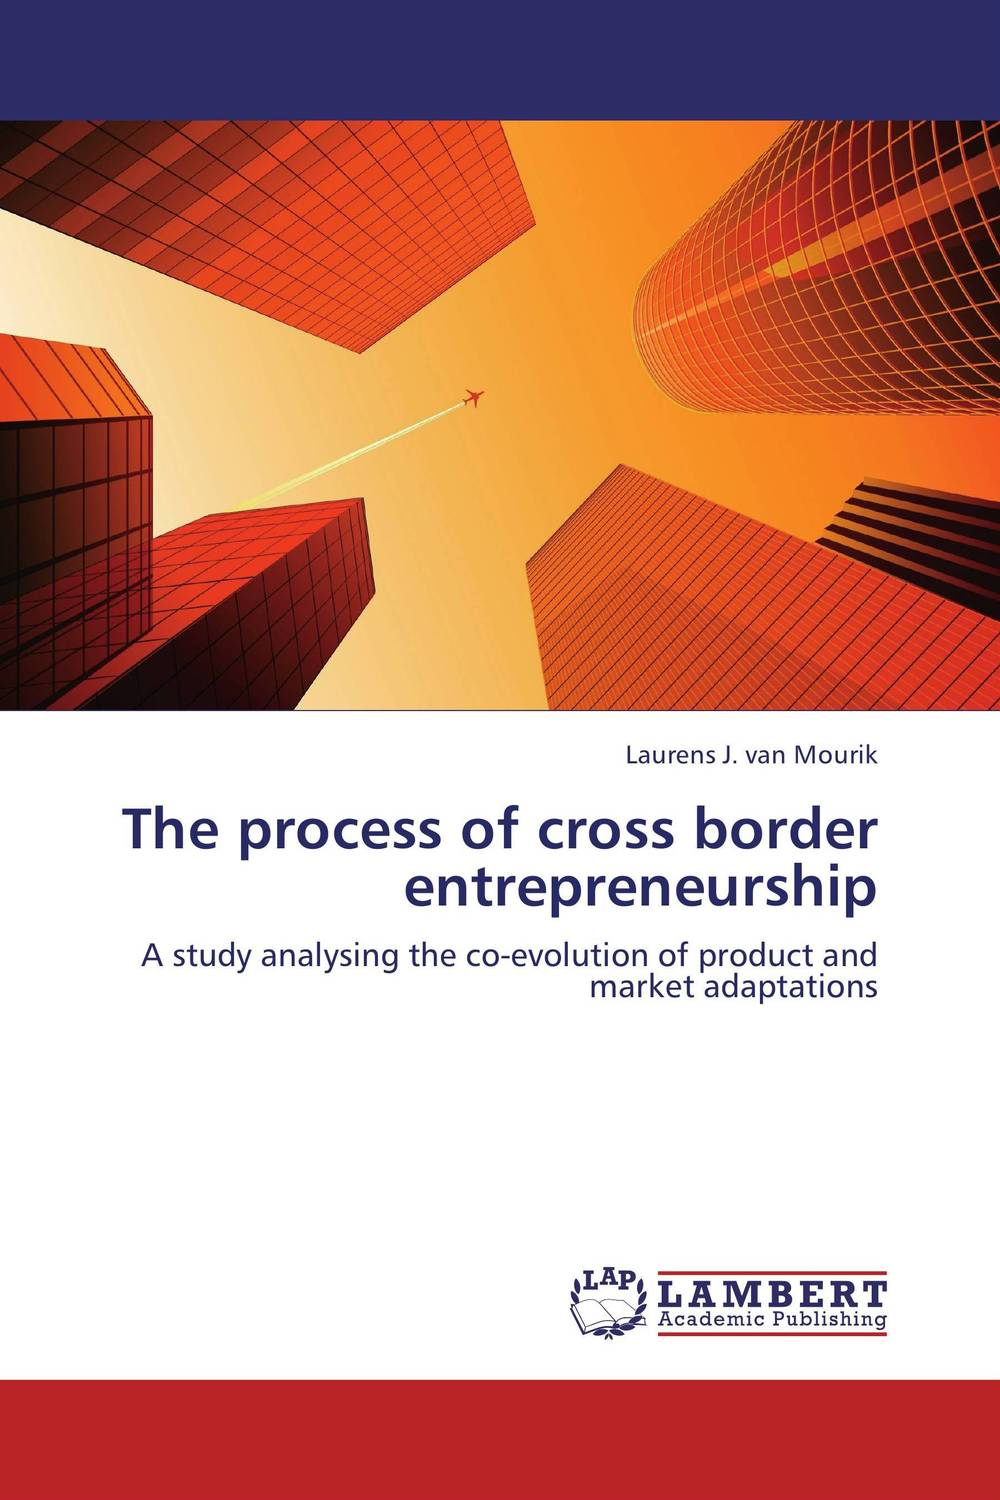 The process of cross border entrepreneurship laurens j van mourik the process of cross border entrepreneurship